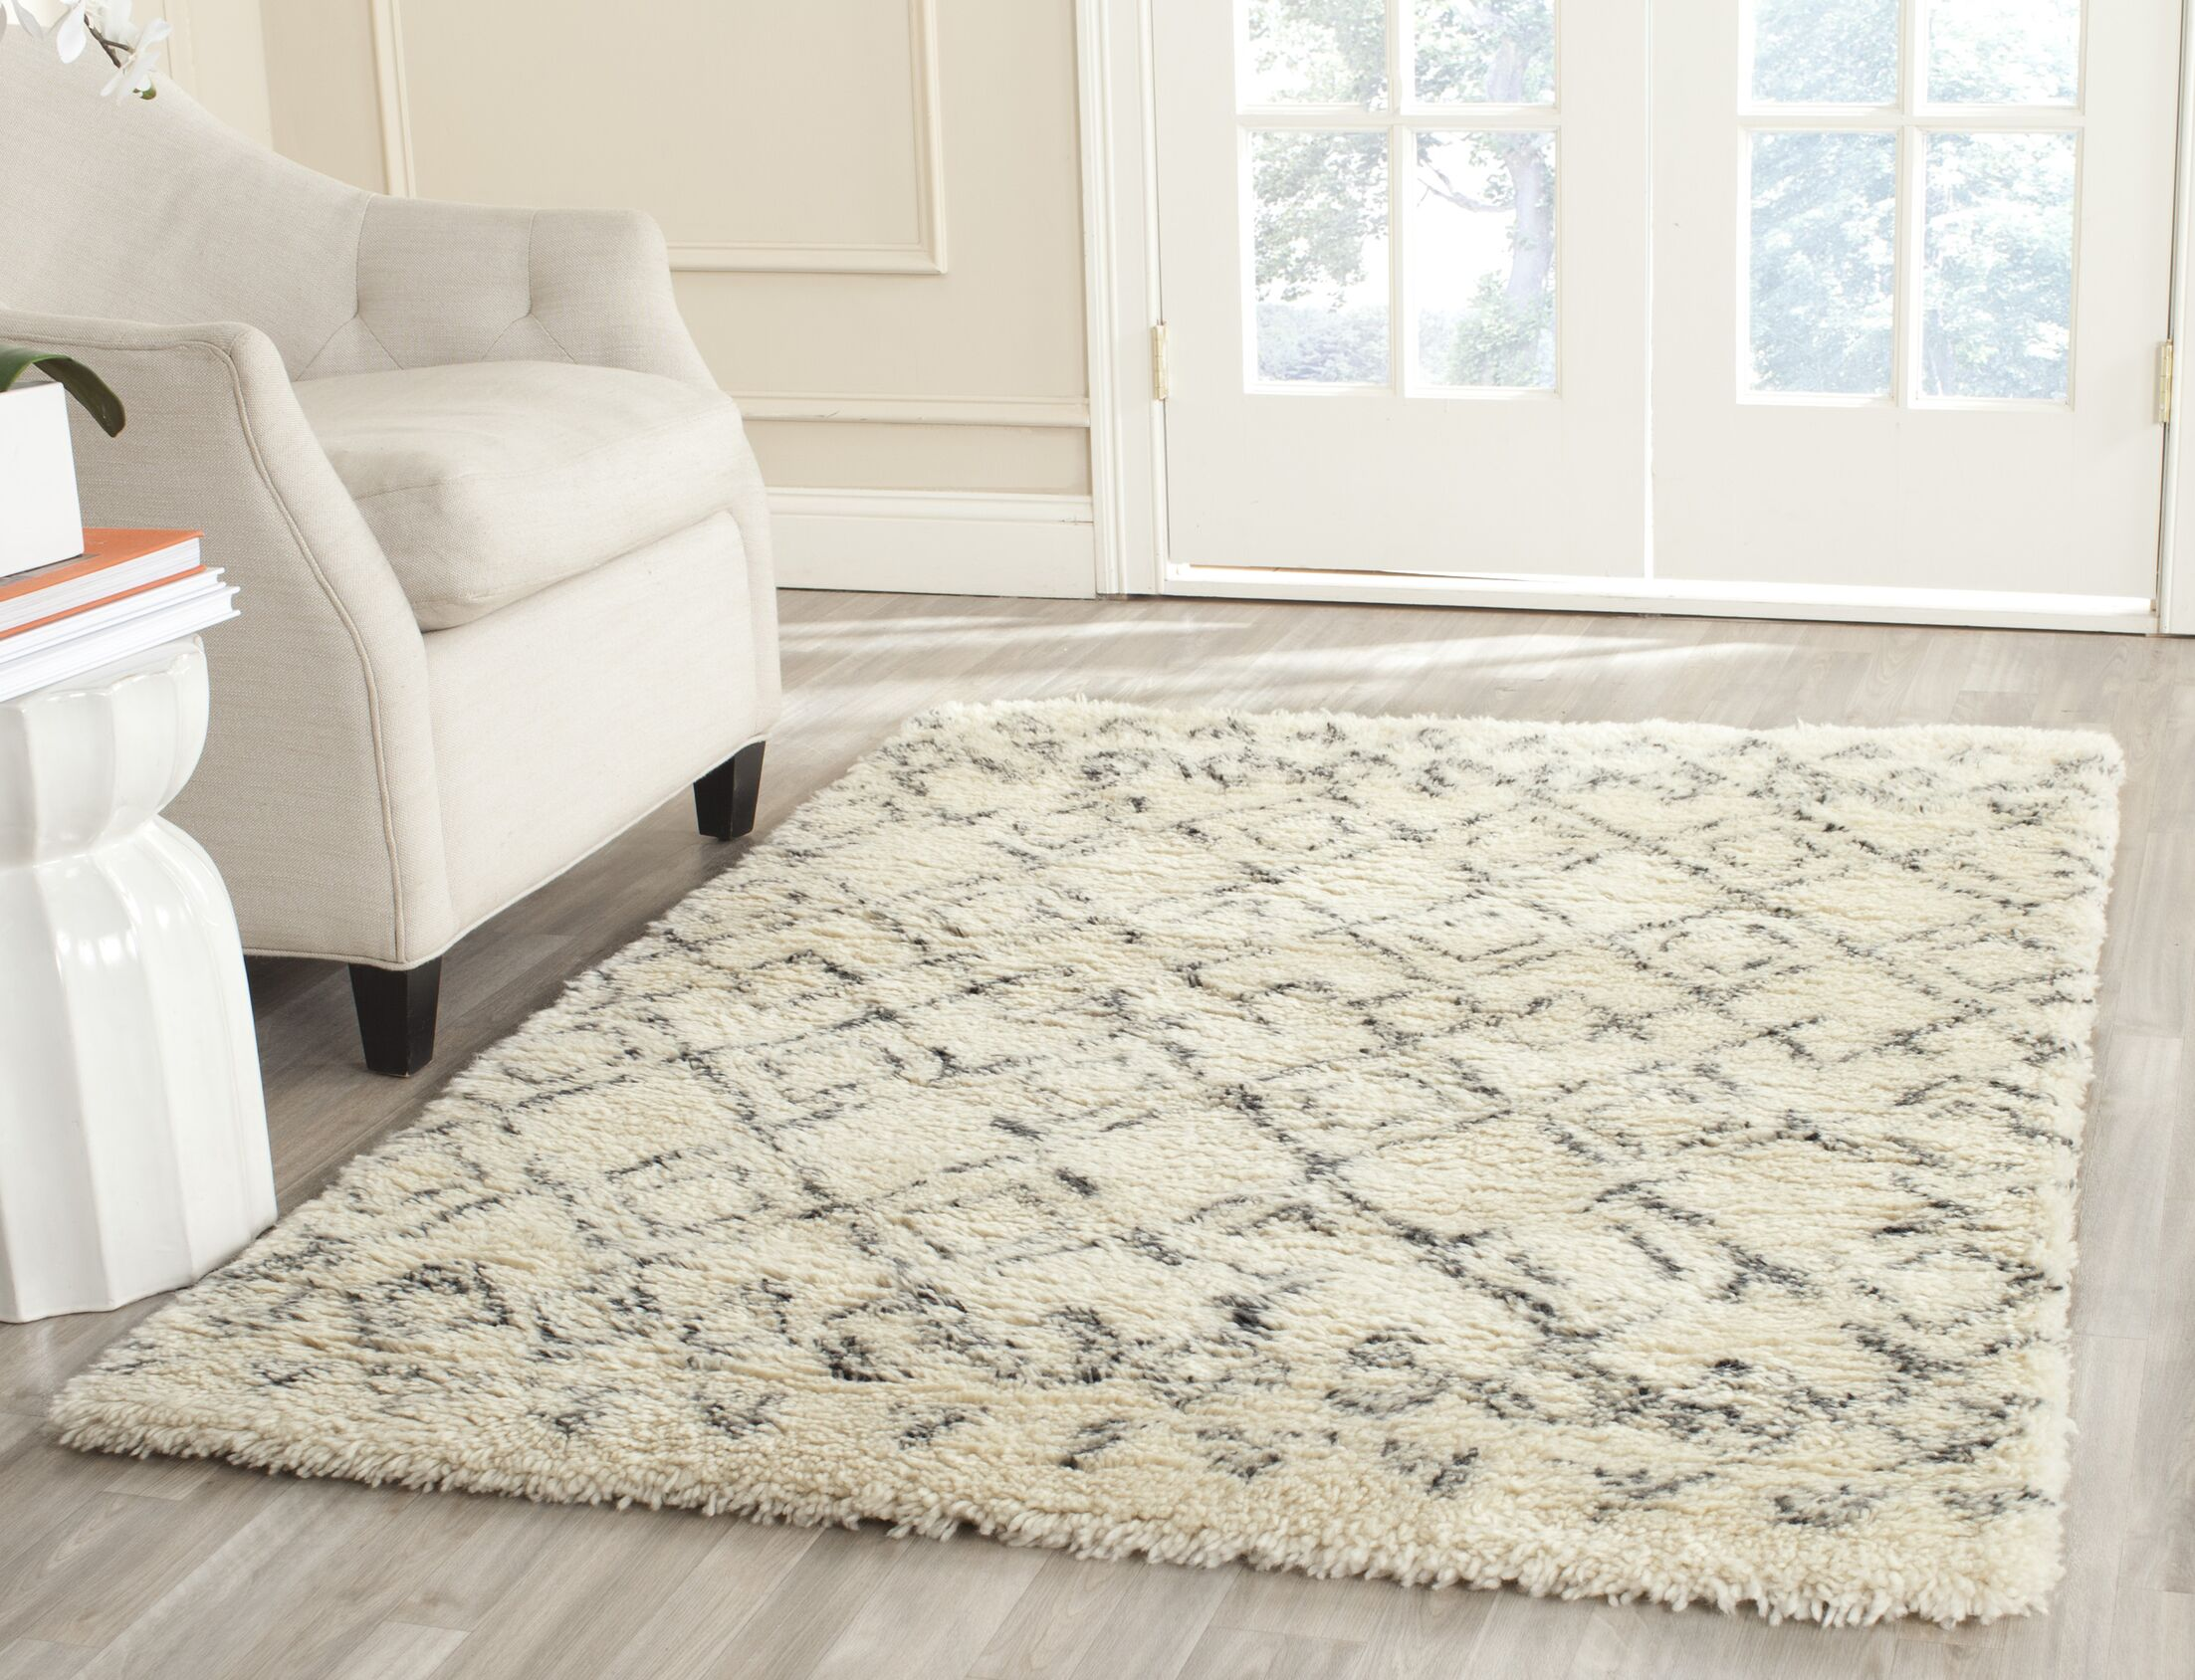 Gholston White/Grey Area Rug Rug Size: Rectangle 4' x 6'